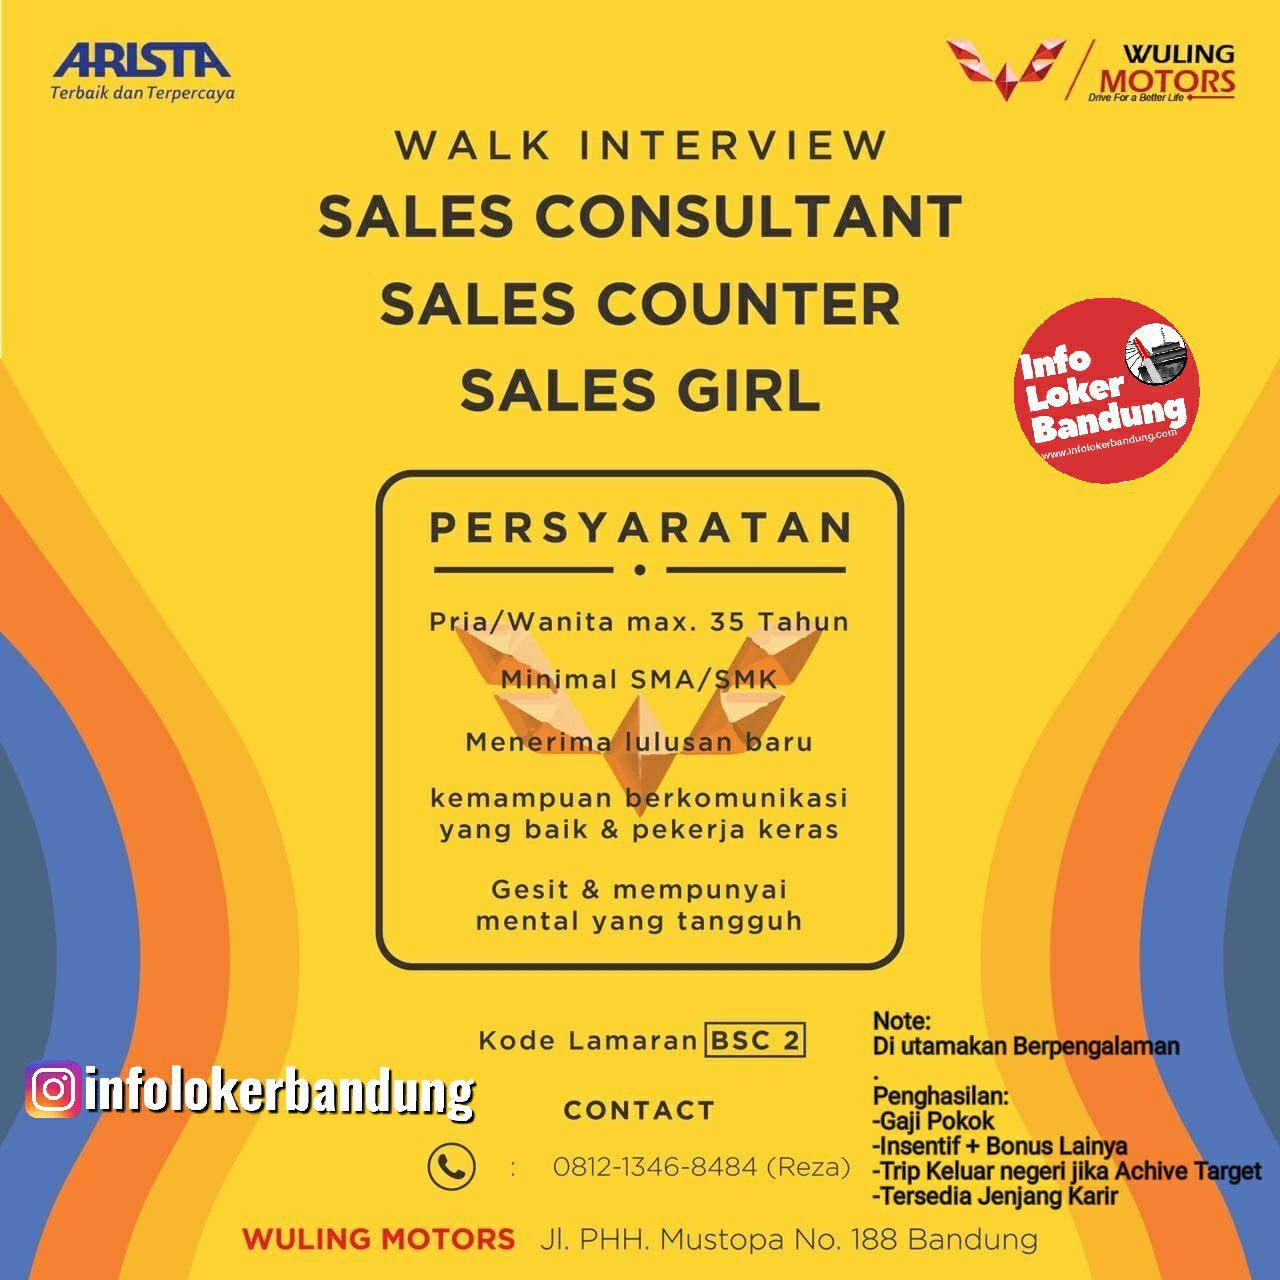 Walk In Interview Wuling Motors Bandung Oktober 2019